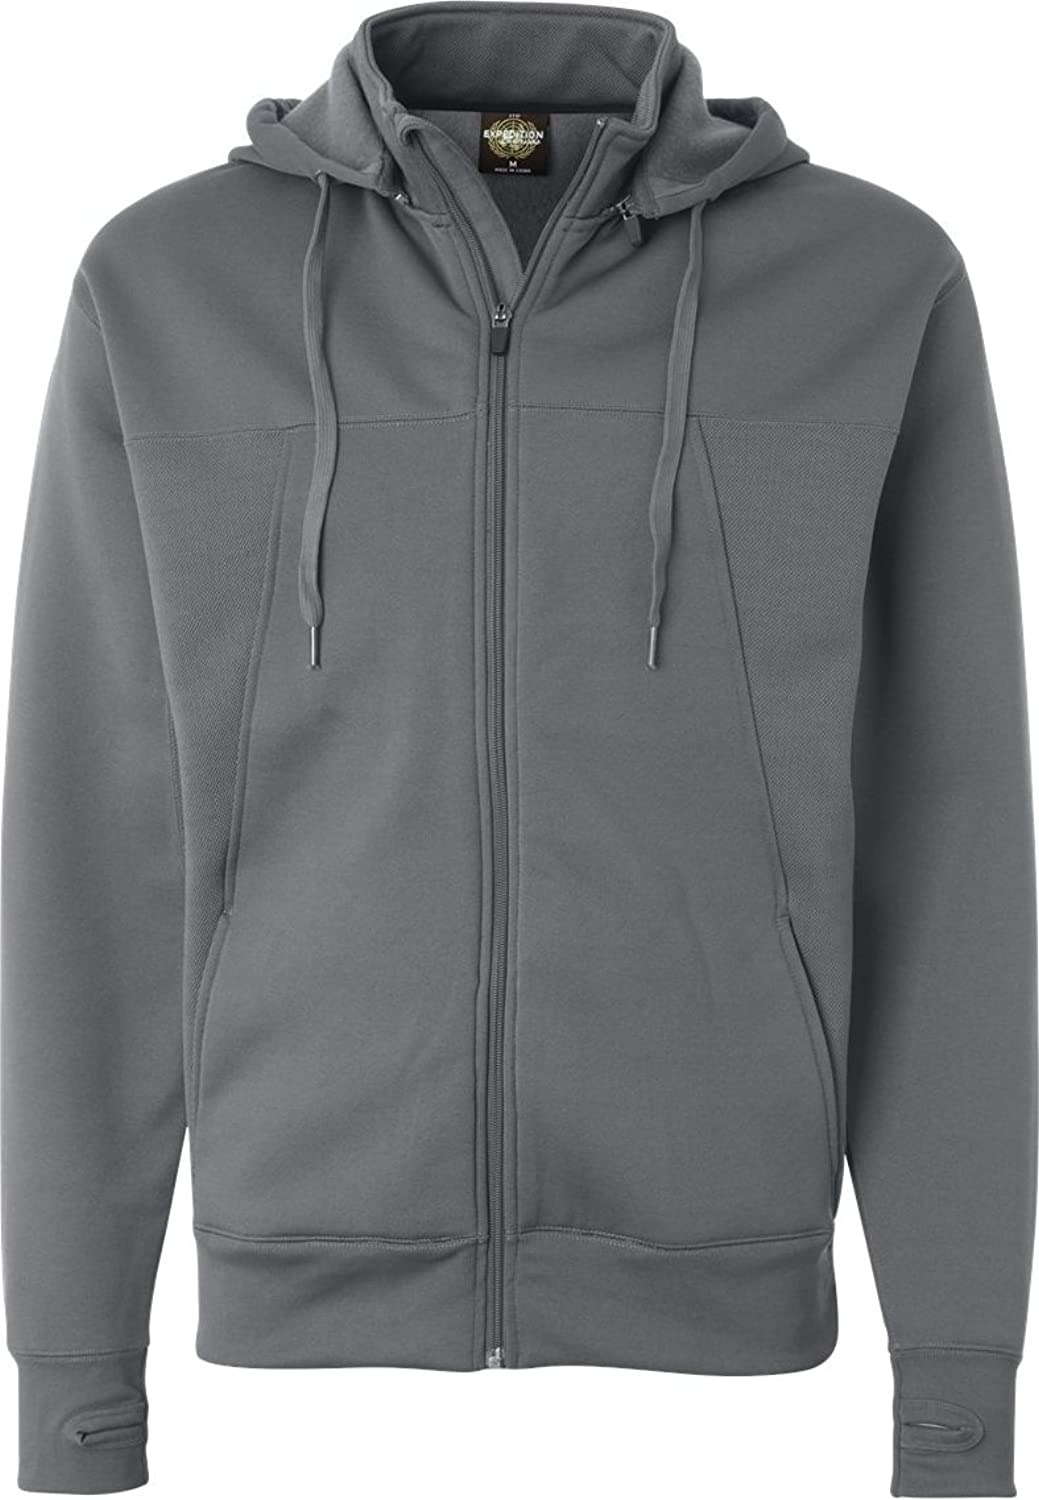 ITC Mens HiTech Hooded Sweatshirt EXP80PTZ